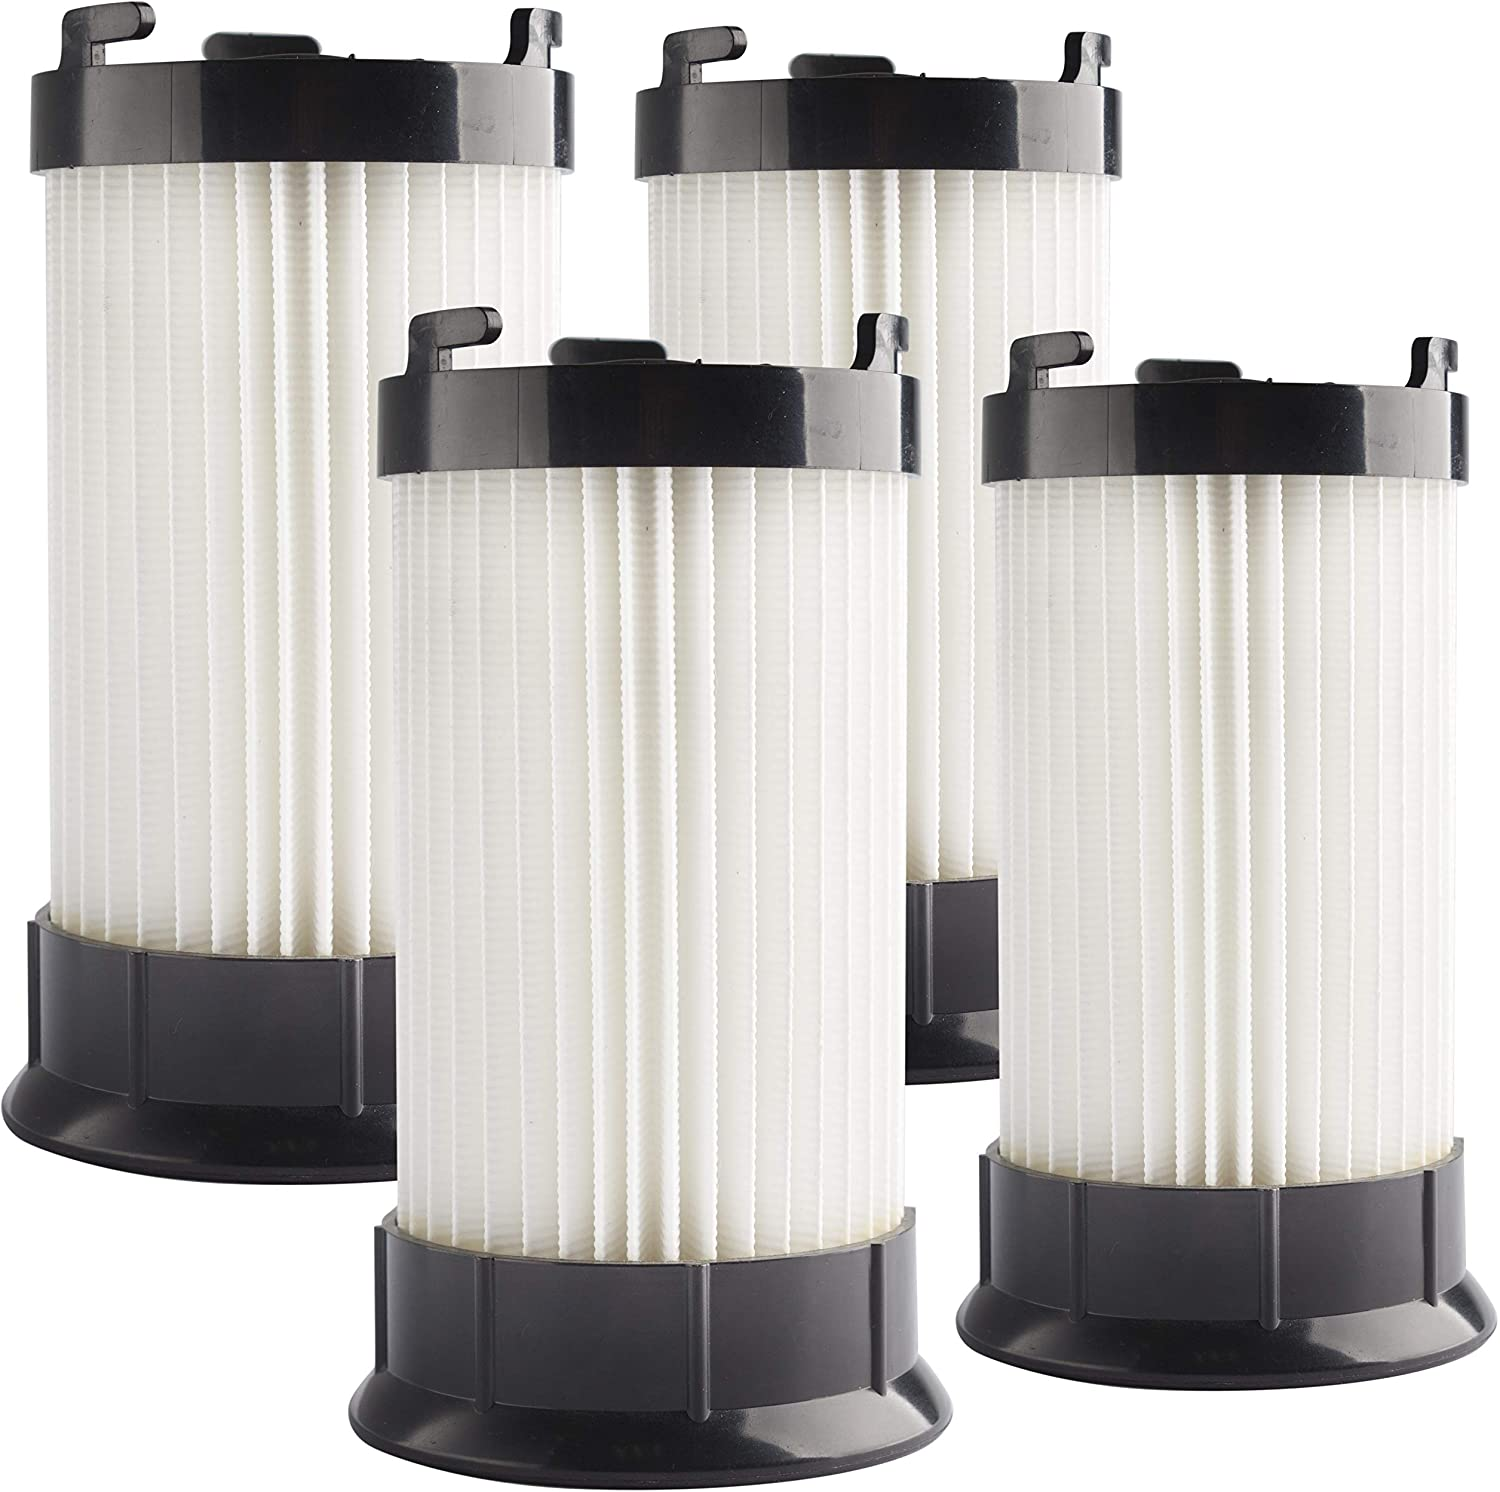 LTWHOME Replacement Washable Vacuum Filters Fit for Eureka DCF4 DCF18 GE DCF1 Vacuum Cleaner, Compare to Part # 62132 63073 61770 3690 18505 28608-1 28608B-1 (Pack of 4)